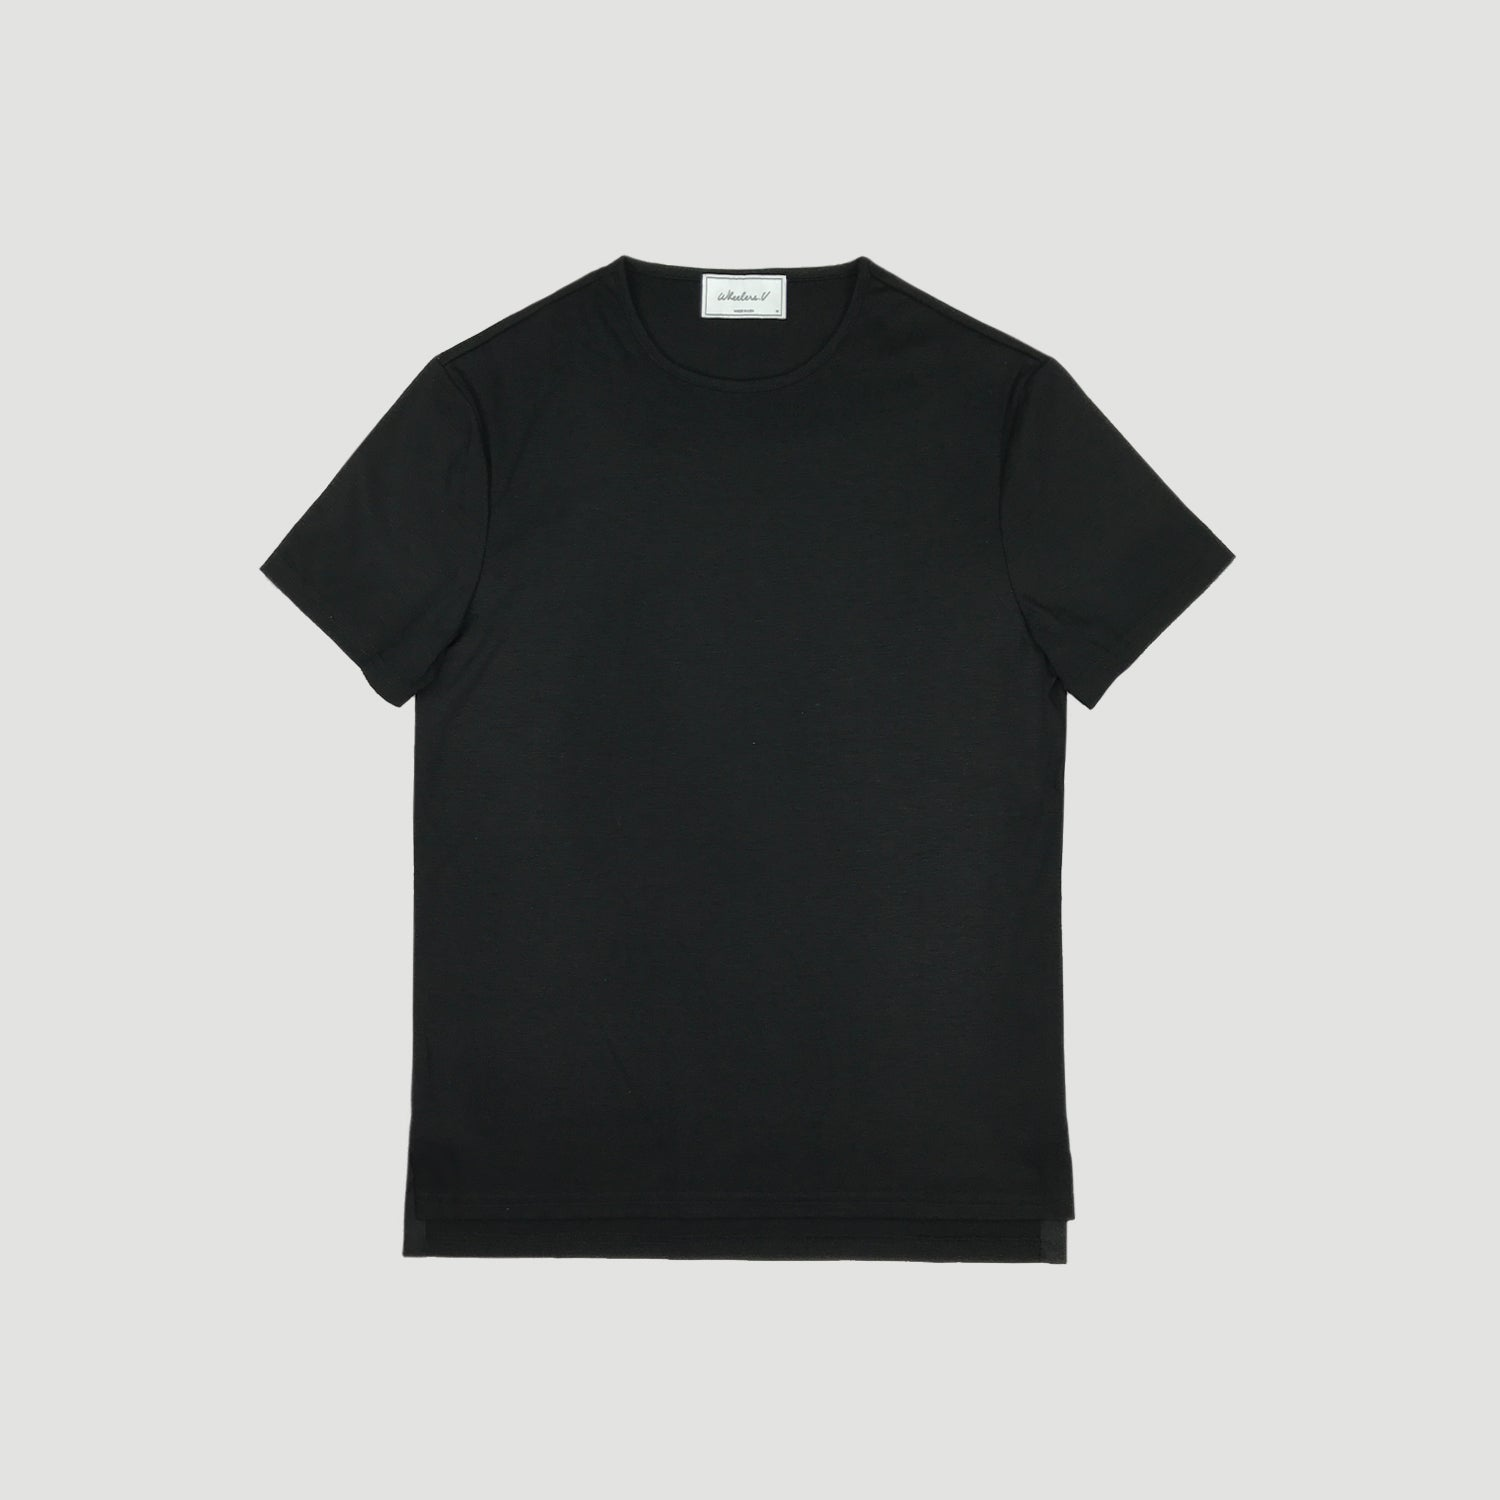 ARVO TEE - Charcoal Heather